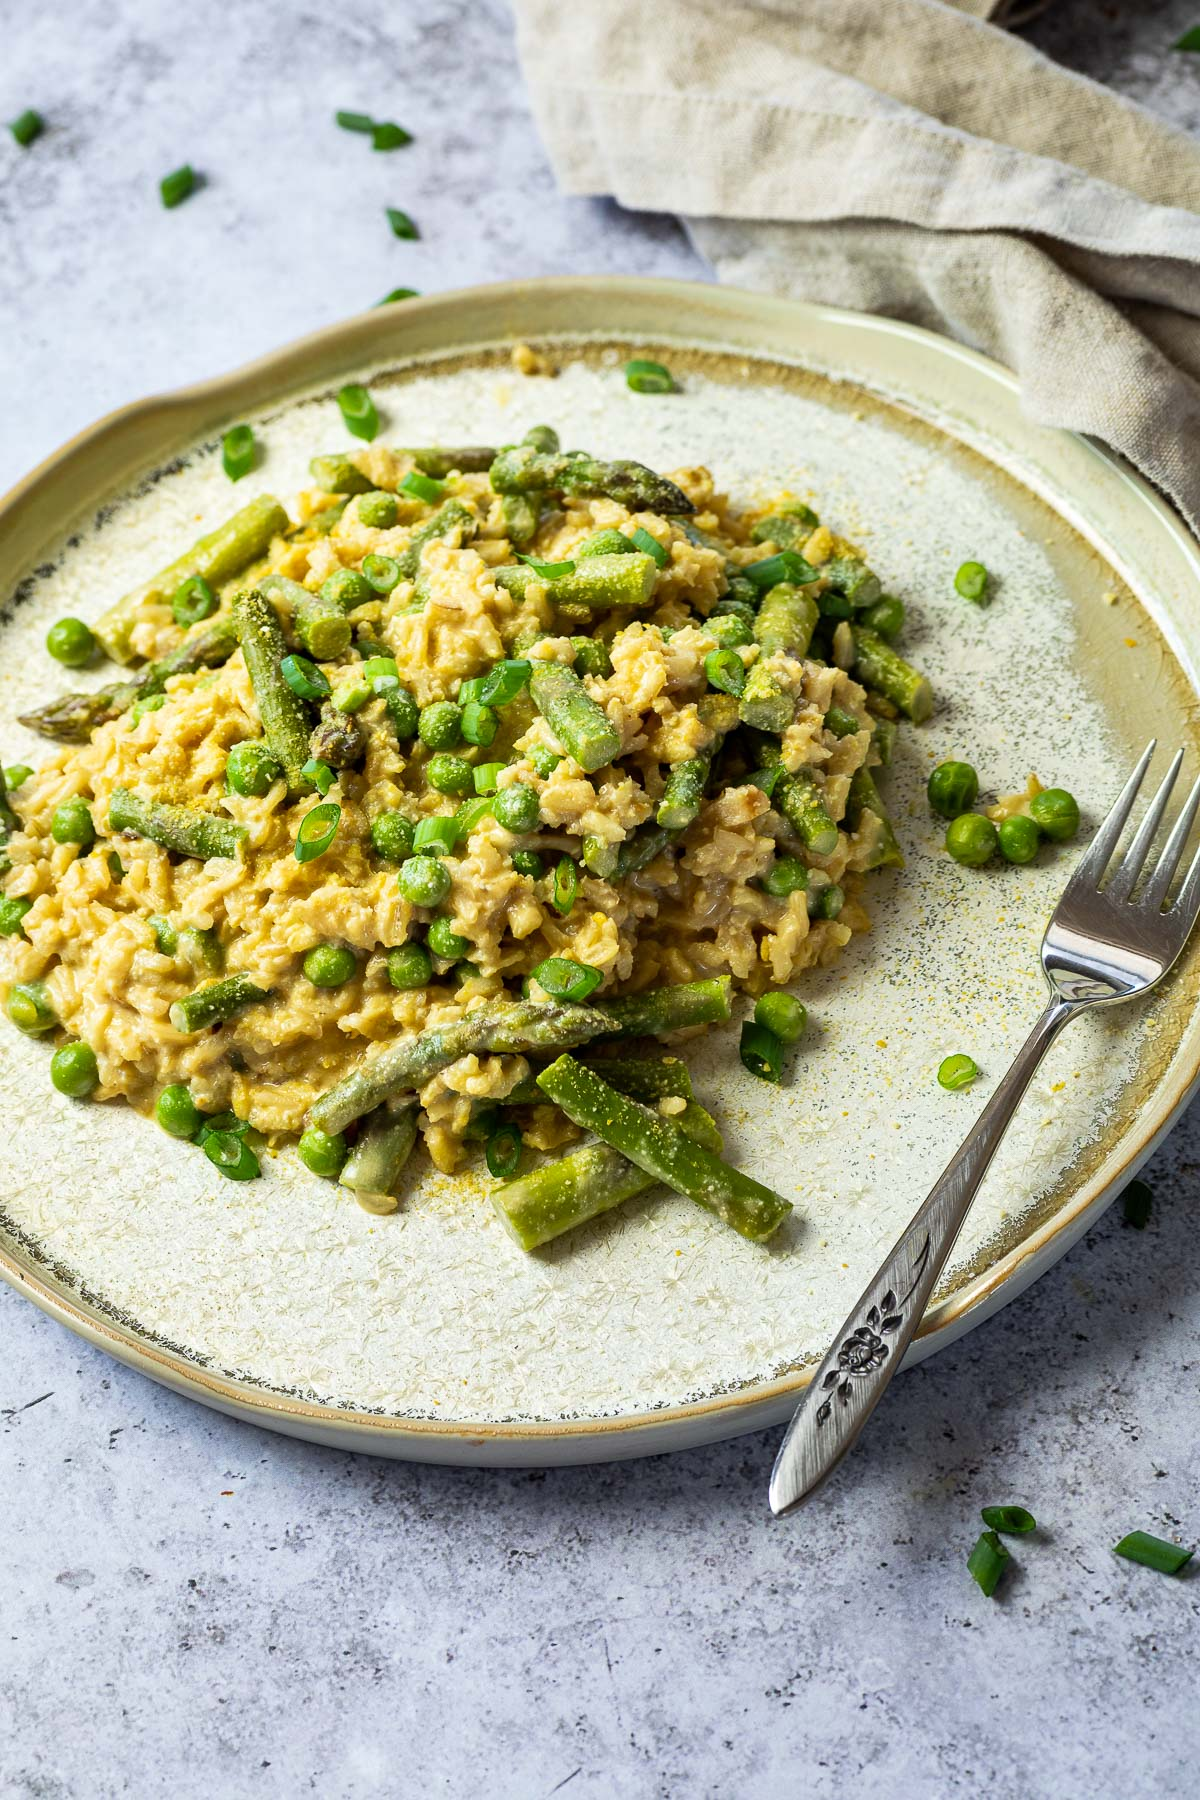 Vegan Pea and Asparagus Risotto on a plate with a fork next to it.